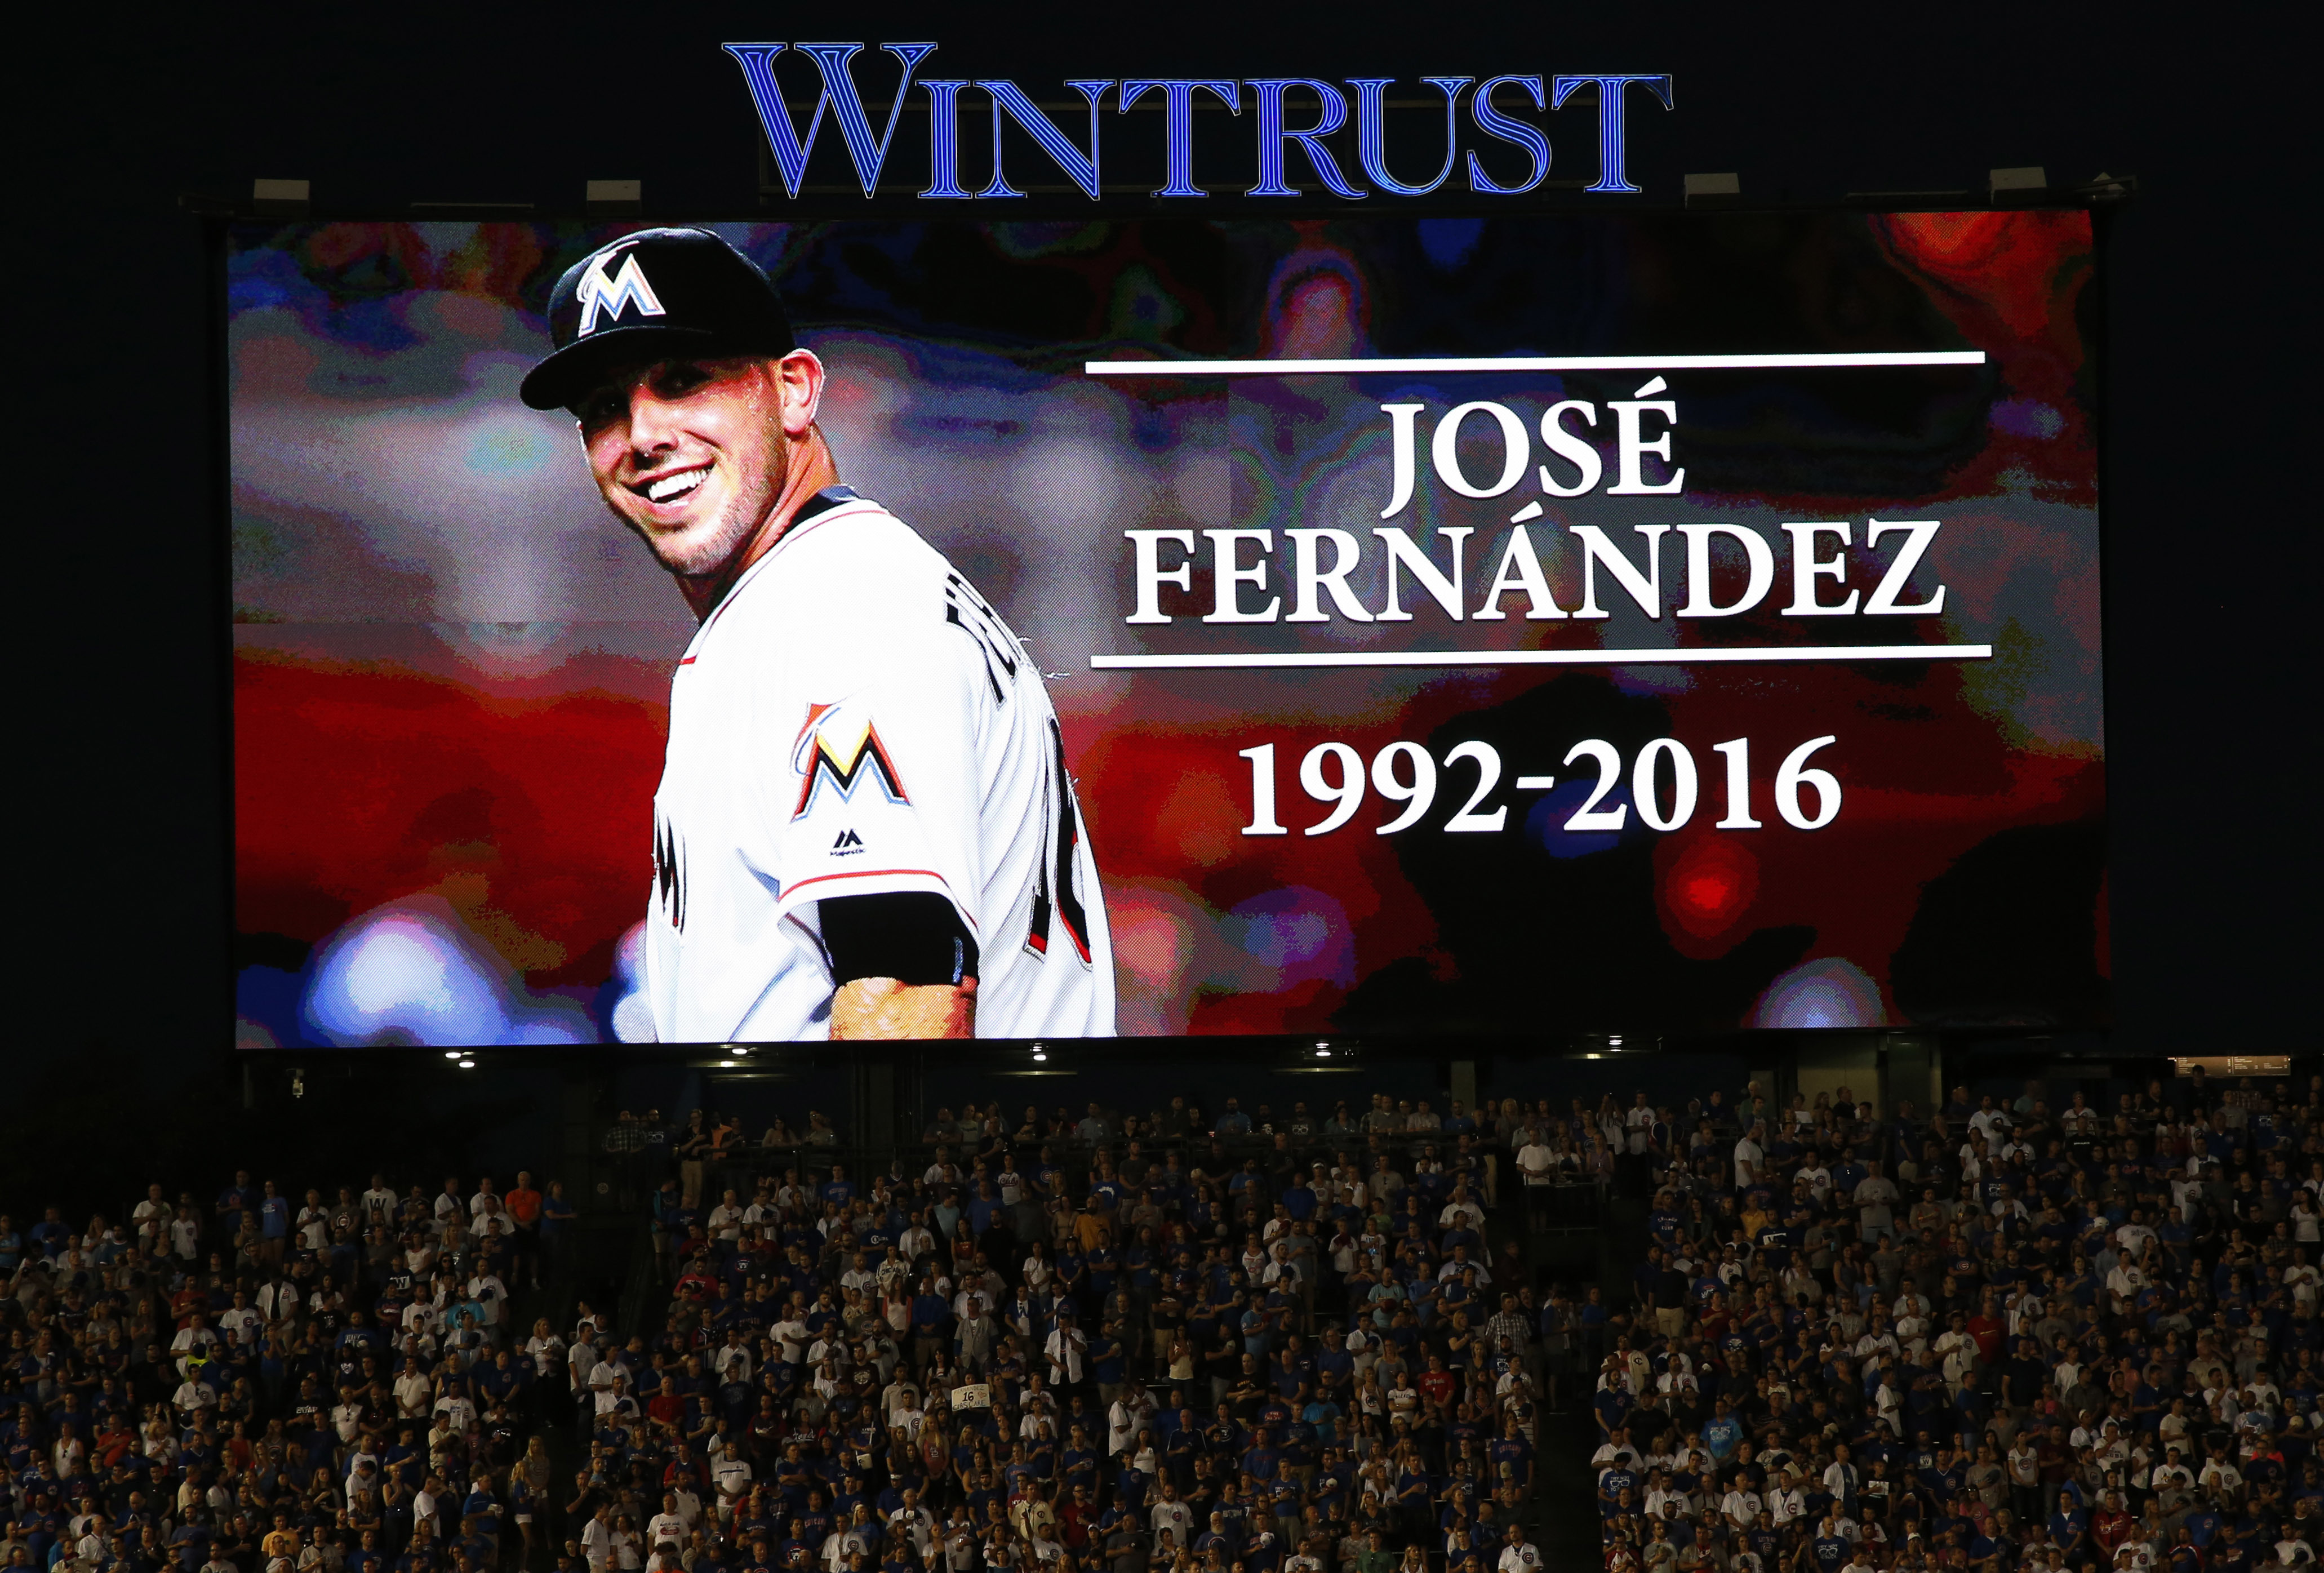 Baseball fans stand for a minute of silence for Miami Marlins pitcher Jose Fernandez, who was killed early Sunday, Sept. 25, 2016 in a boating accident in Miami, before a baseball game between the St. Louis Cardinals and the Chicago Cubs Sunday, Sept. 25,